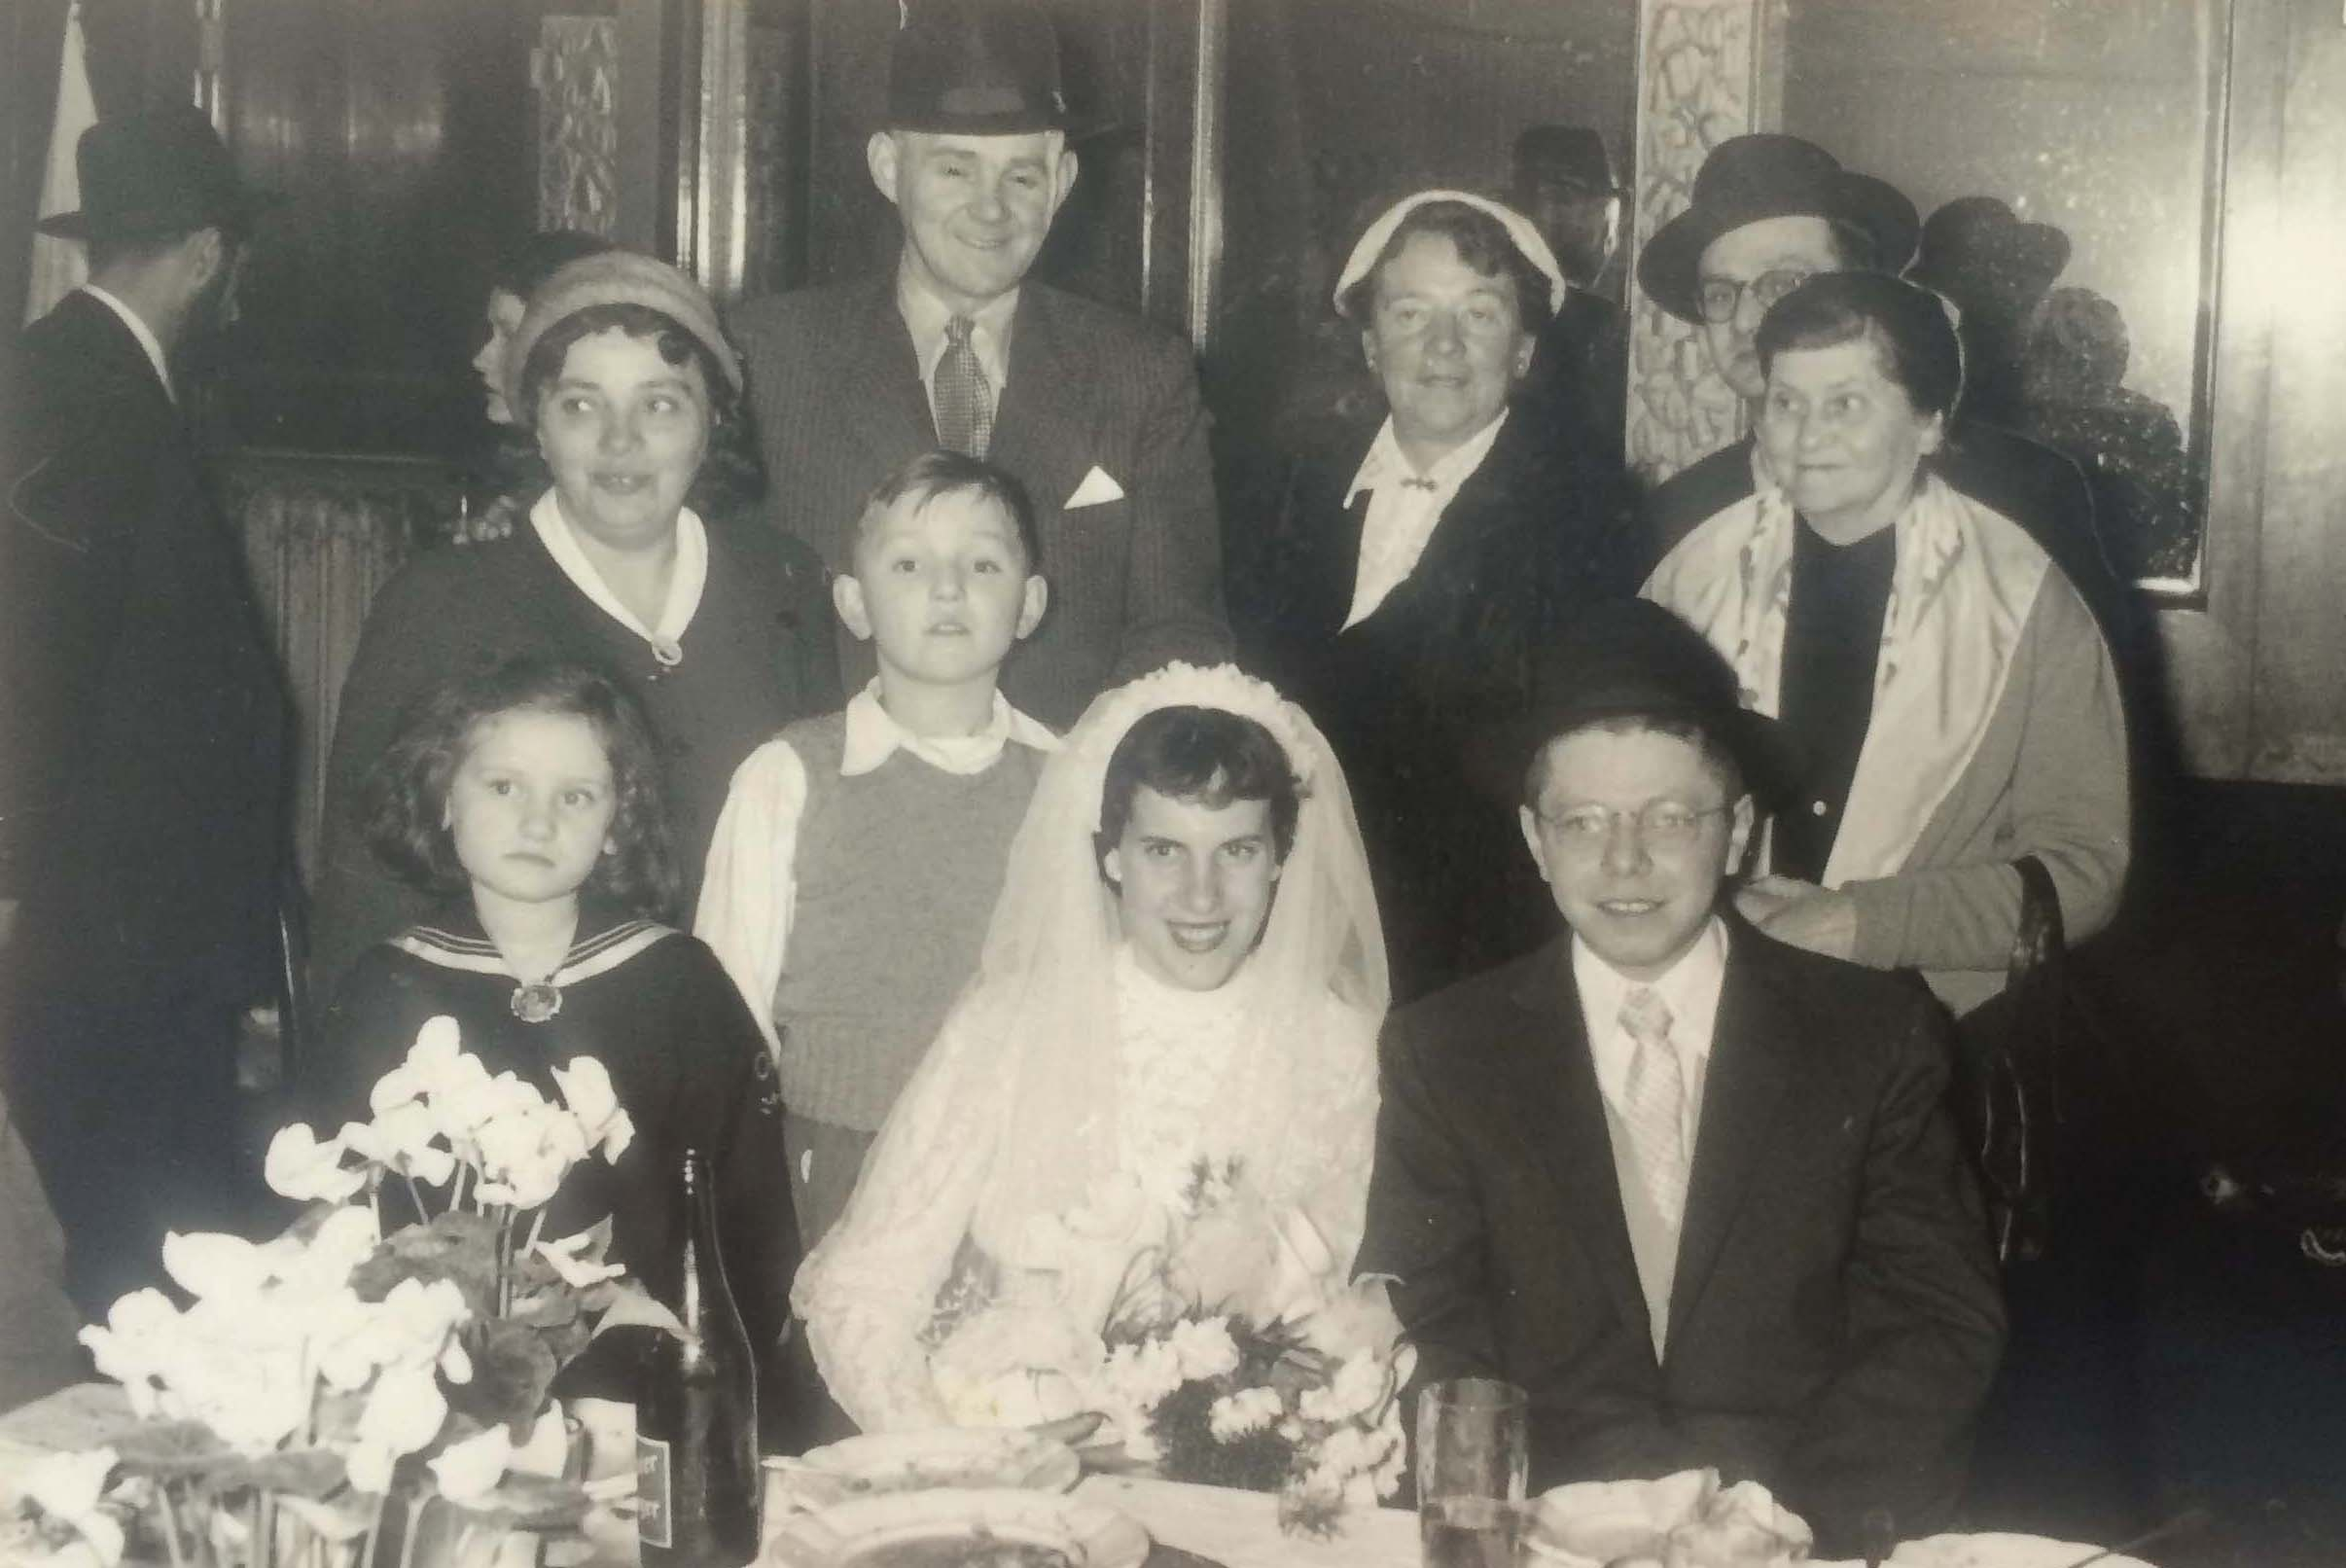 Safely in Vienna. Andor Platschek and his bride (seated) celebrate their wedding, with Piroska, Jeno, and Paul Lindenblatt in the background together with members of the bride's family